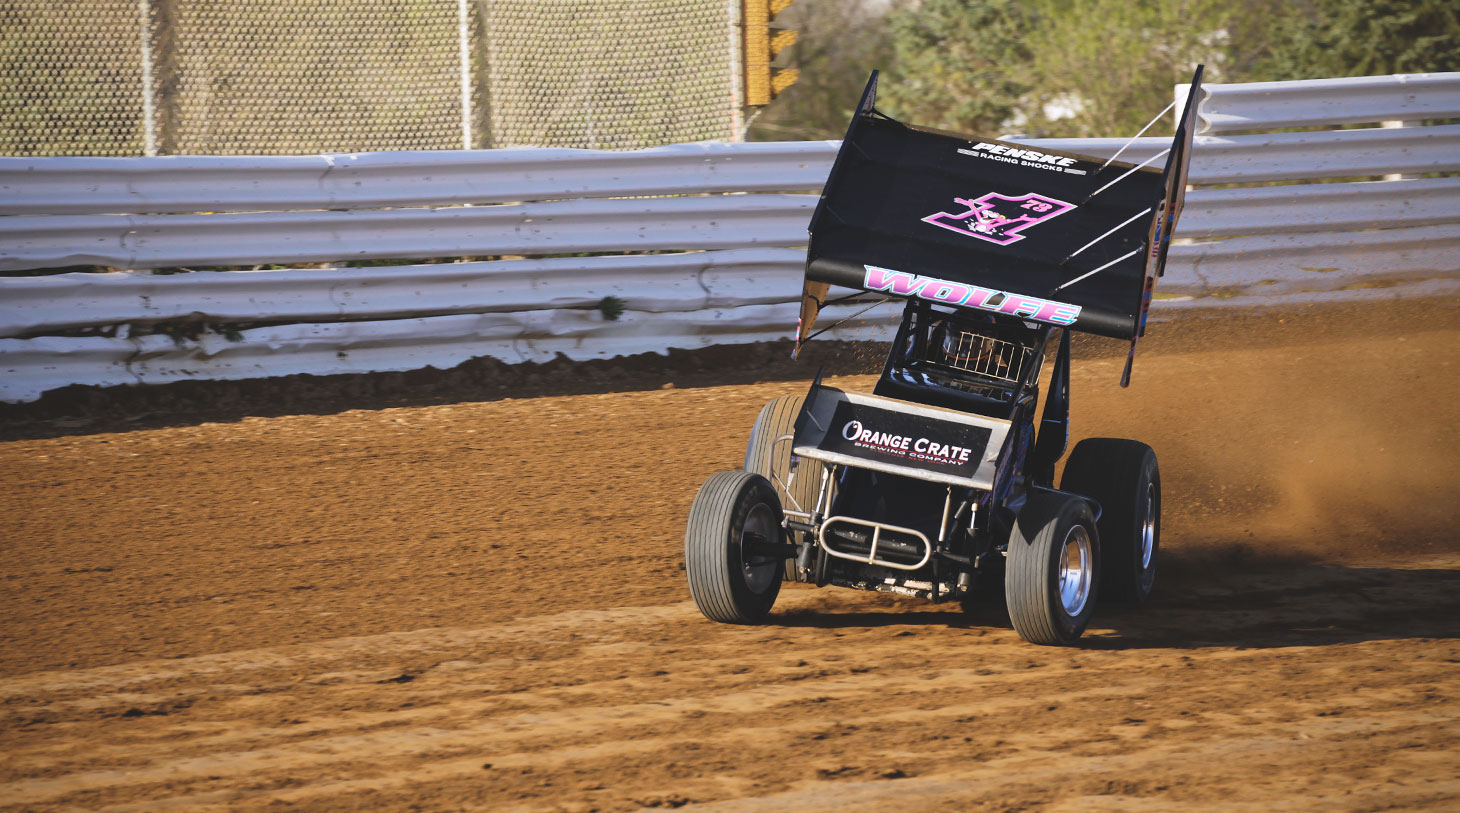 Lucas Wolfe captured his first World of Outlaws feature win at Bloomington Speedway in 2012